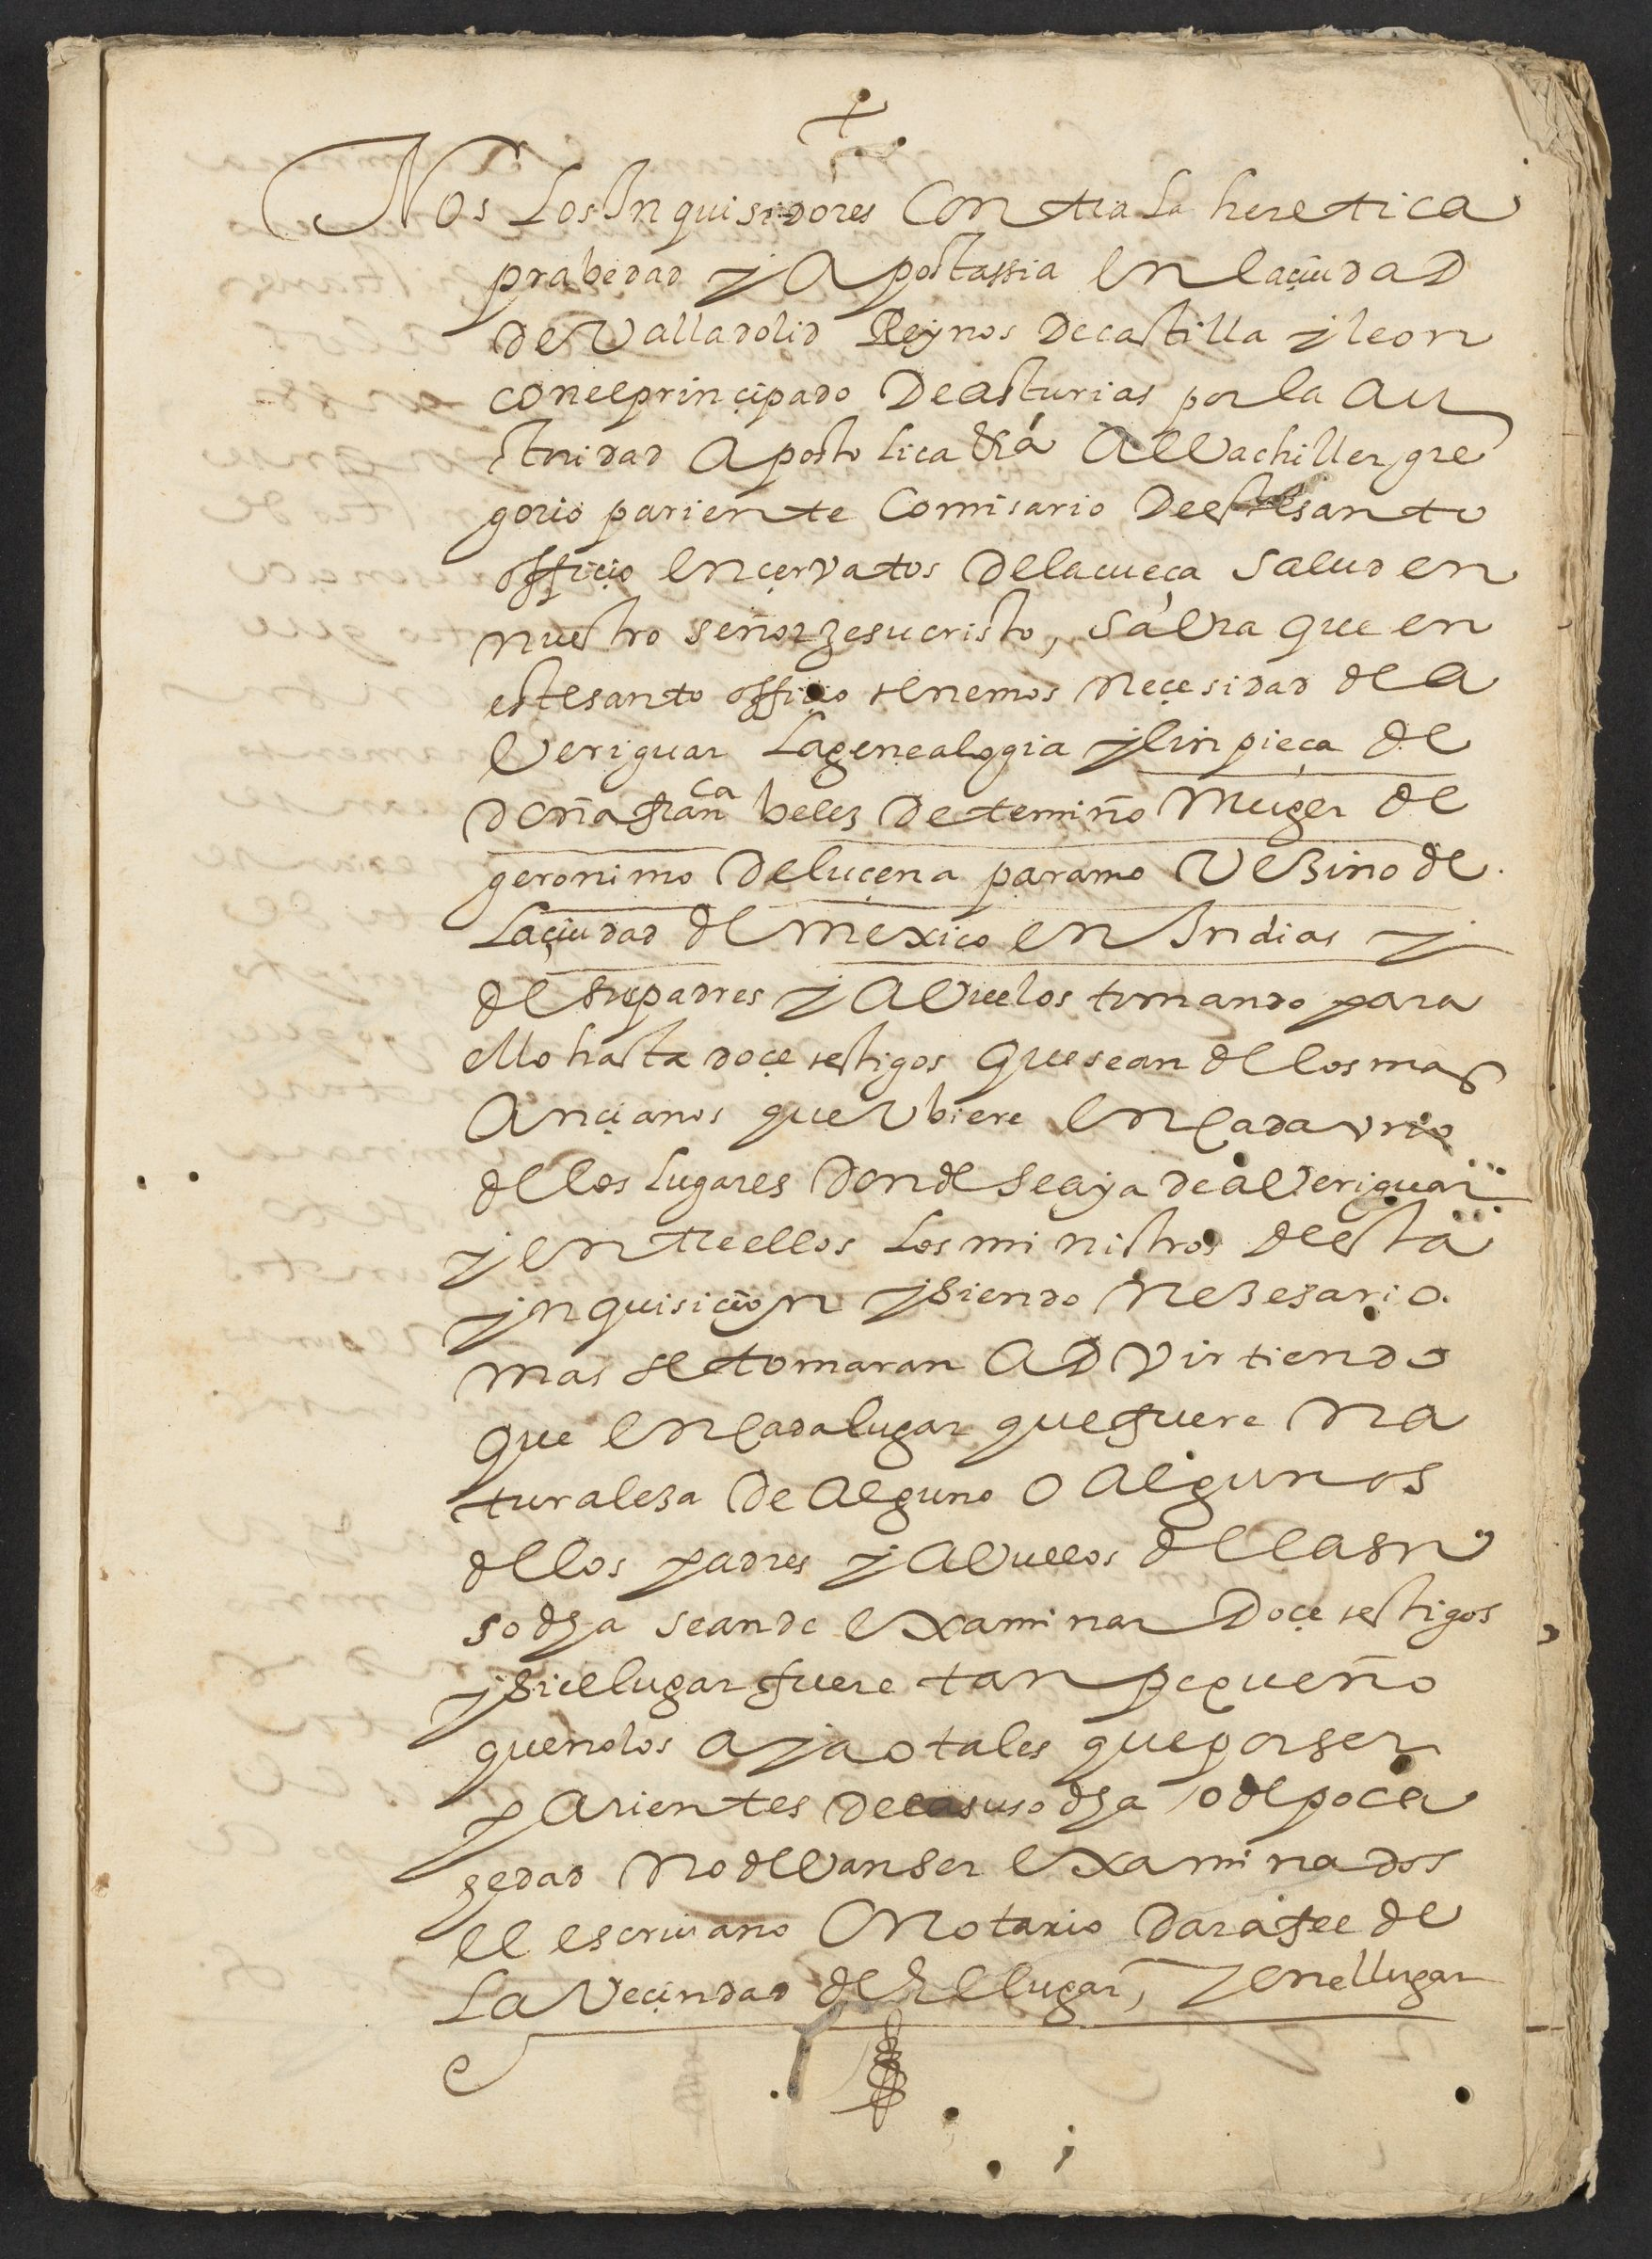 Additional information on the genealogy and trial of Francisca Velez de Temiño, 4 April 1623.